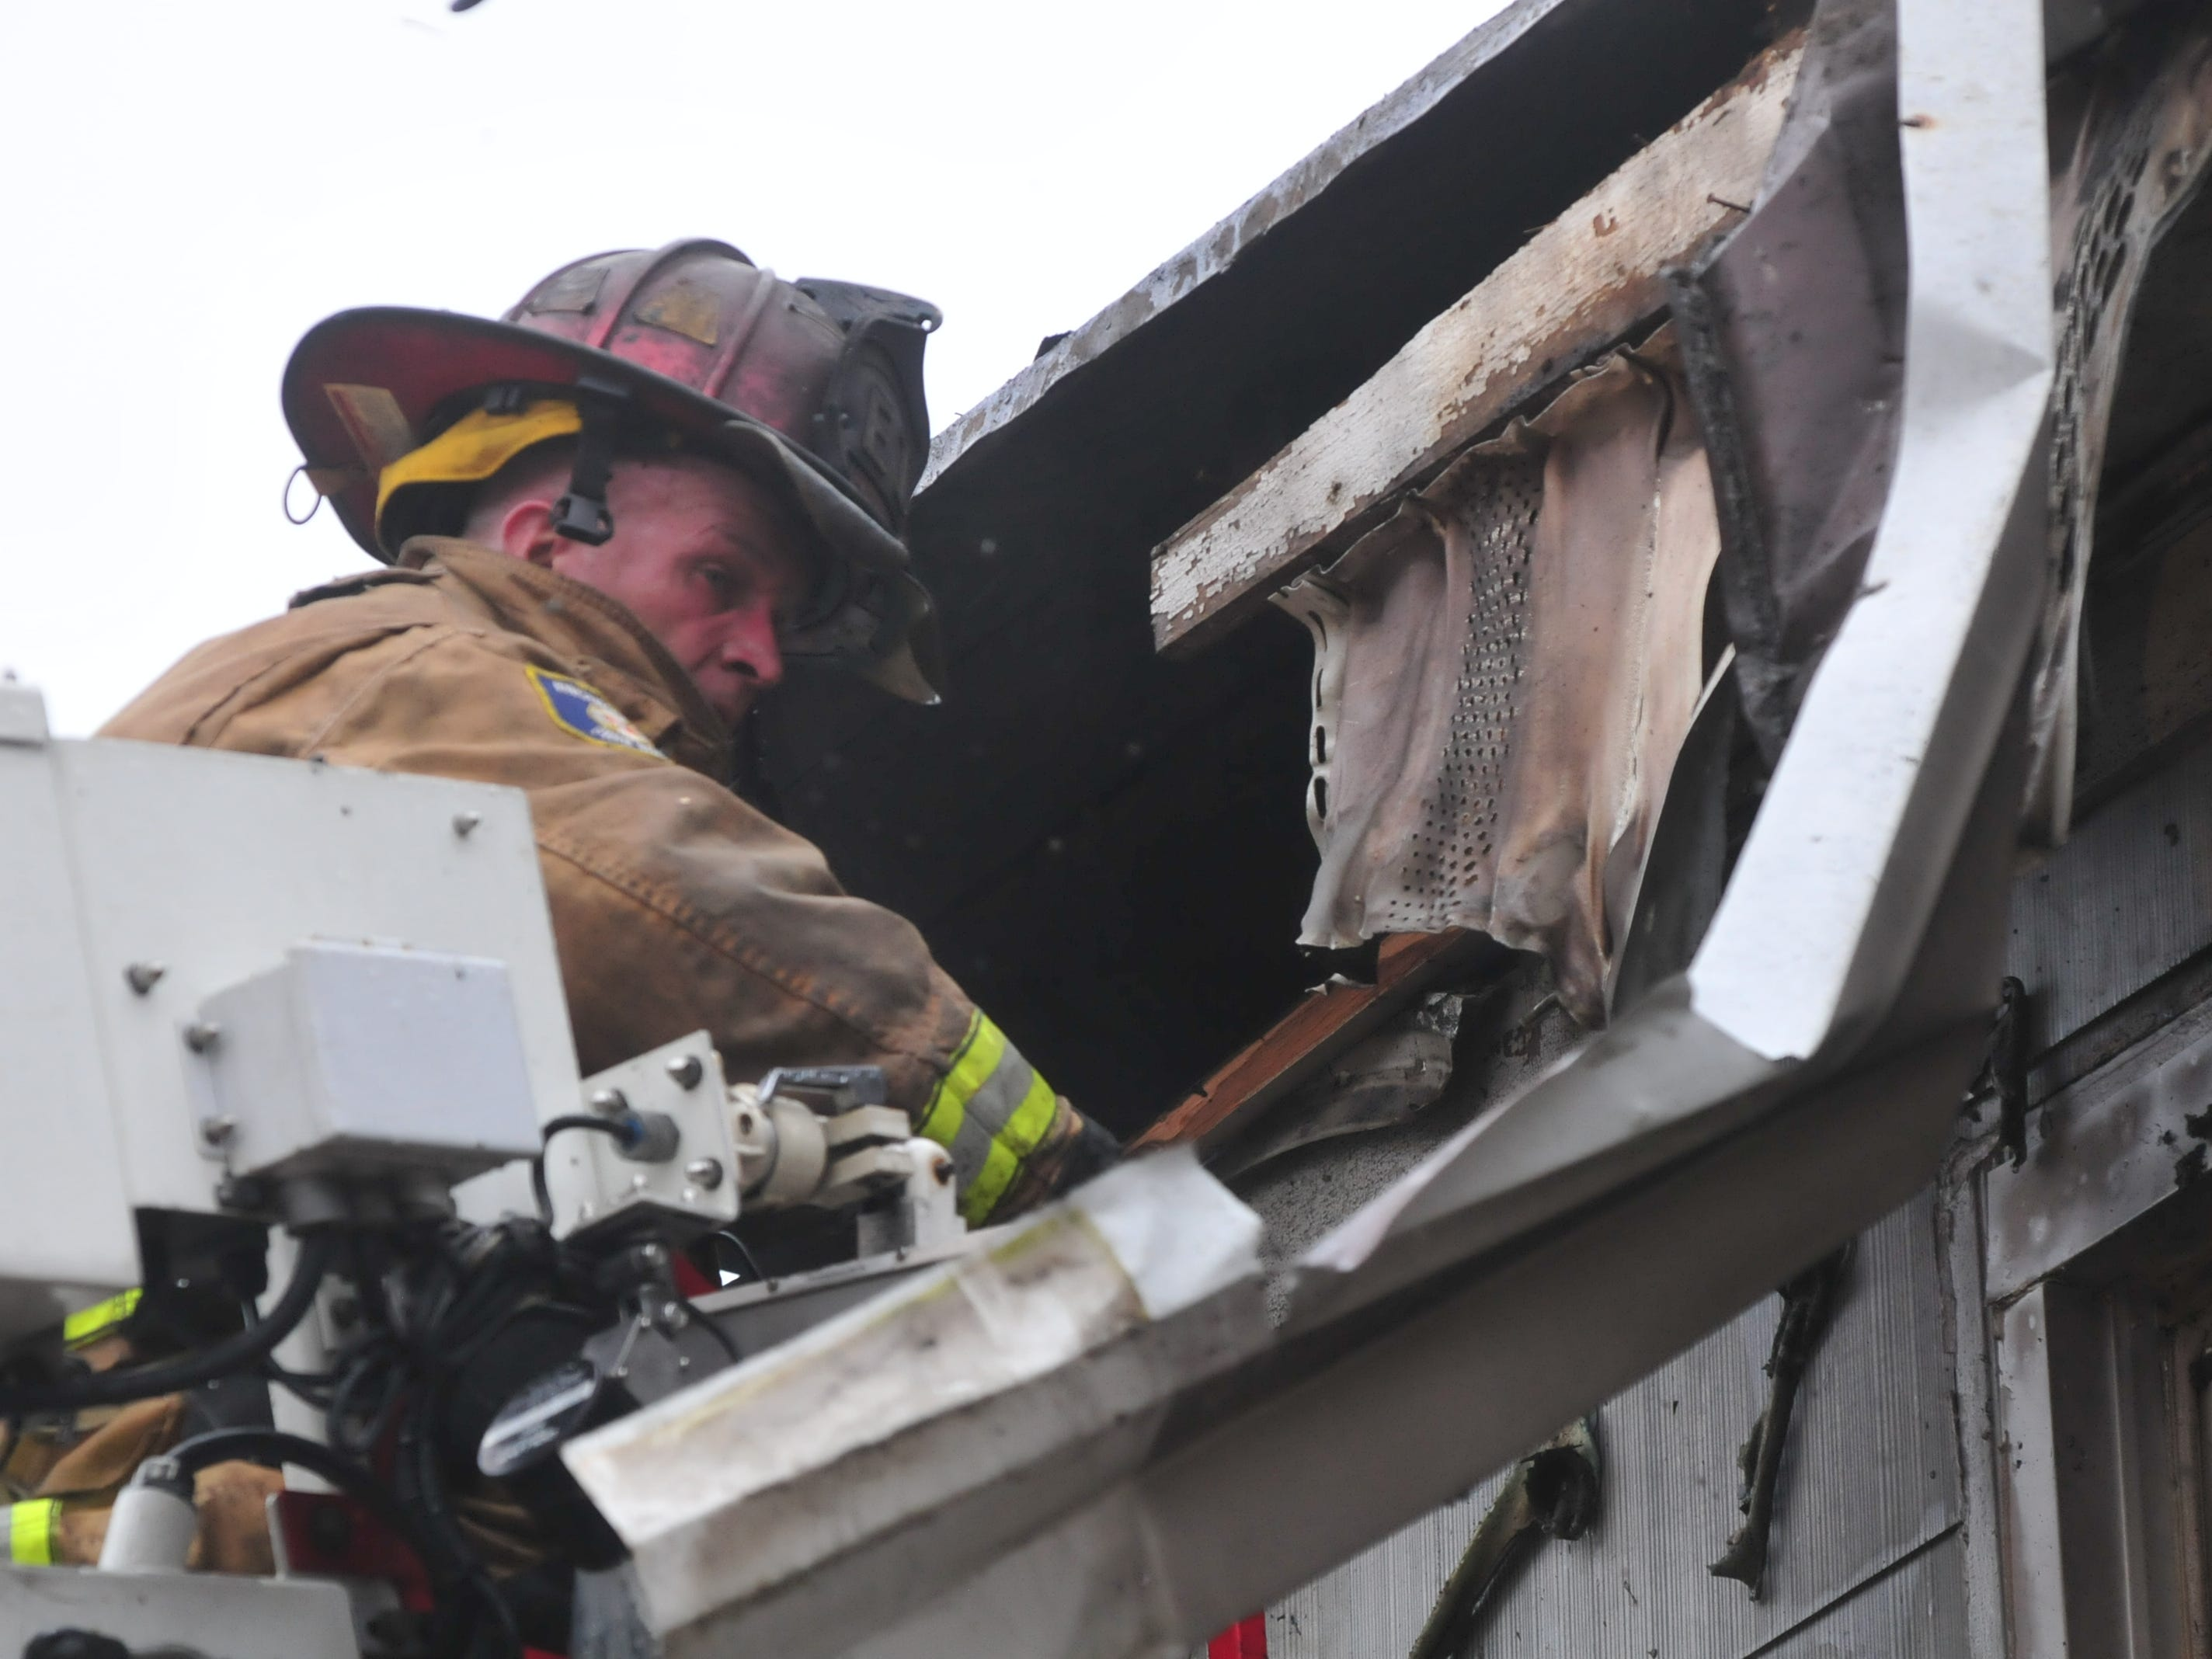 Lt. Kyle George works to access the final areas of fire Wednesday at 112 N. 18th St.